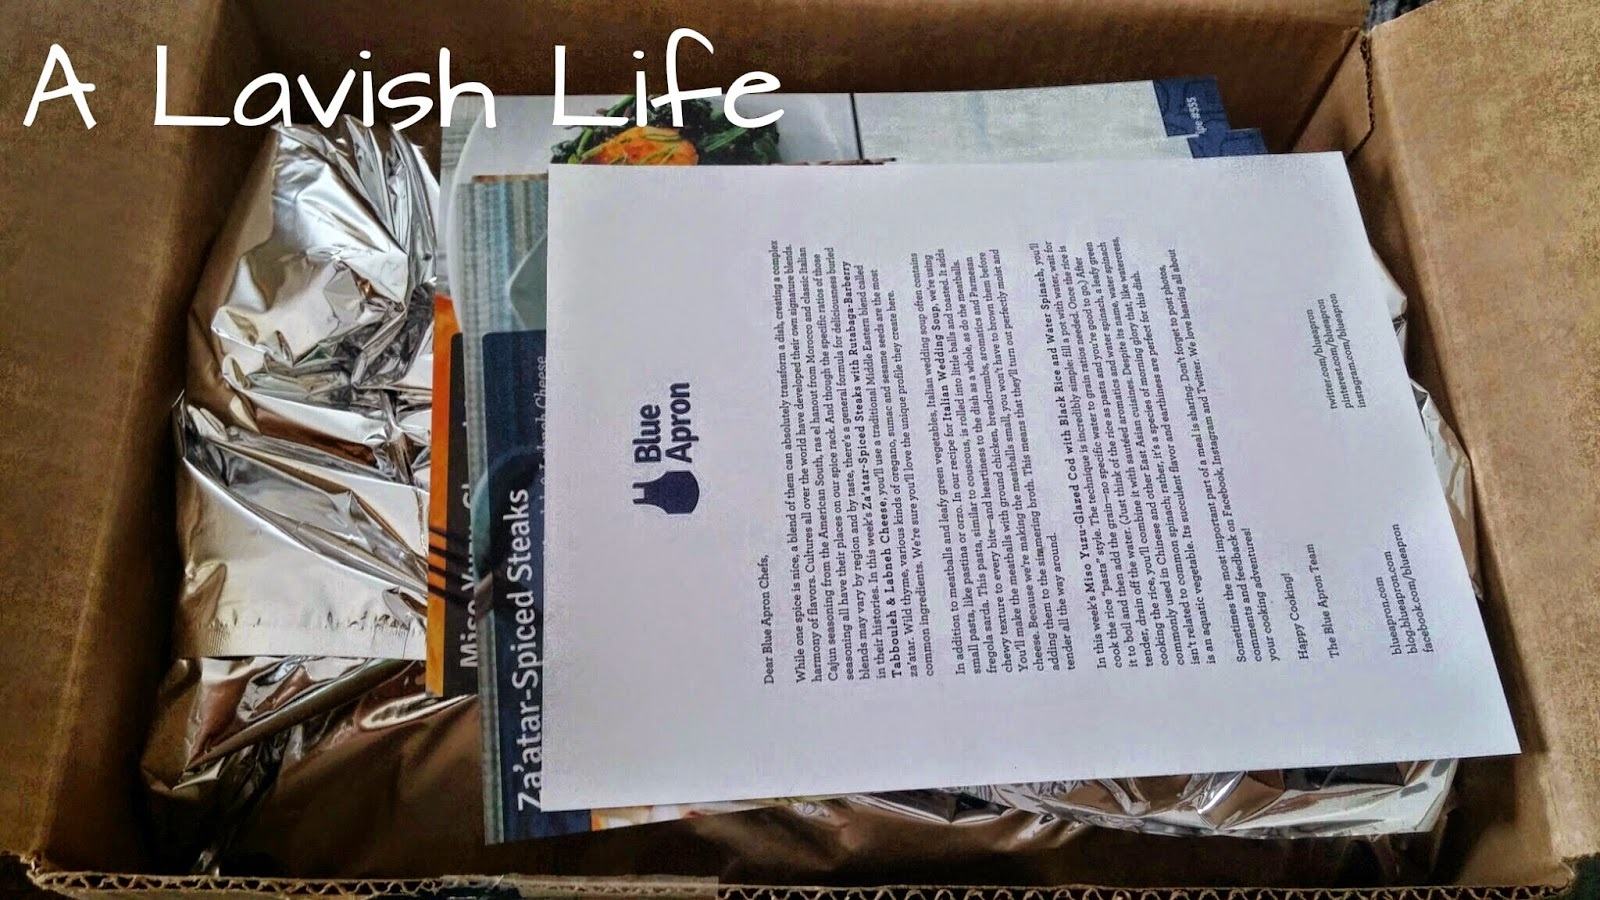 Blue apron yuzu cod - Let Me Point Out That When This Box Arrived All Of The Produce Appeared To Be Intact And Nothing Was Visibly Spoiled Or Wilted All Of The Ingredients Were